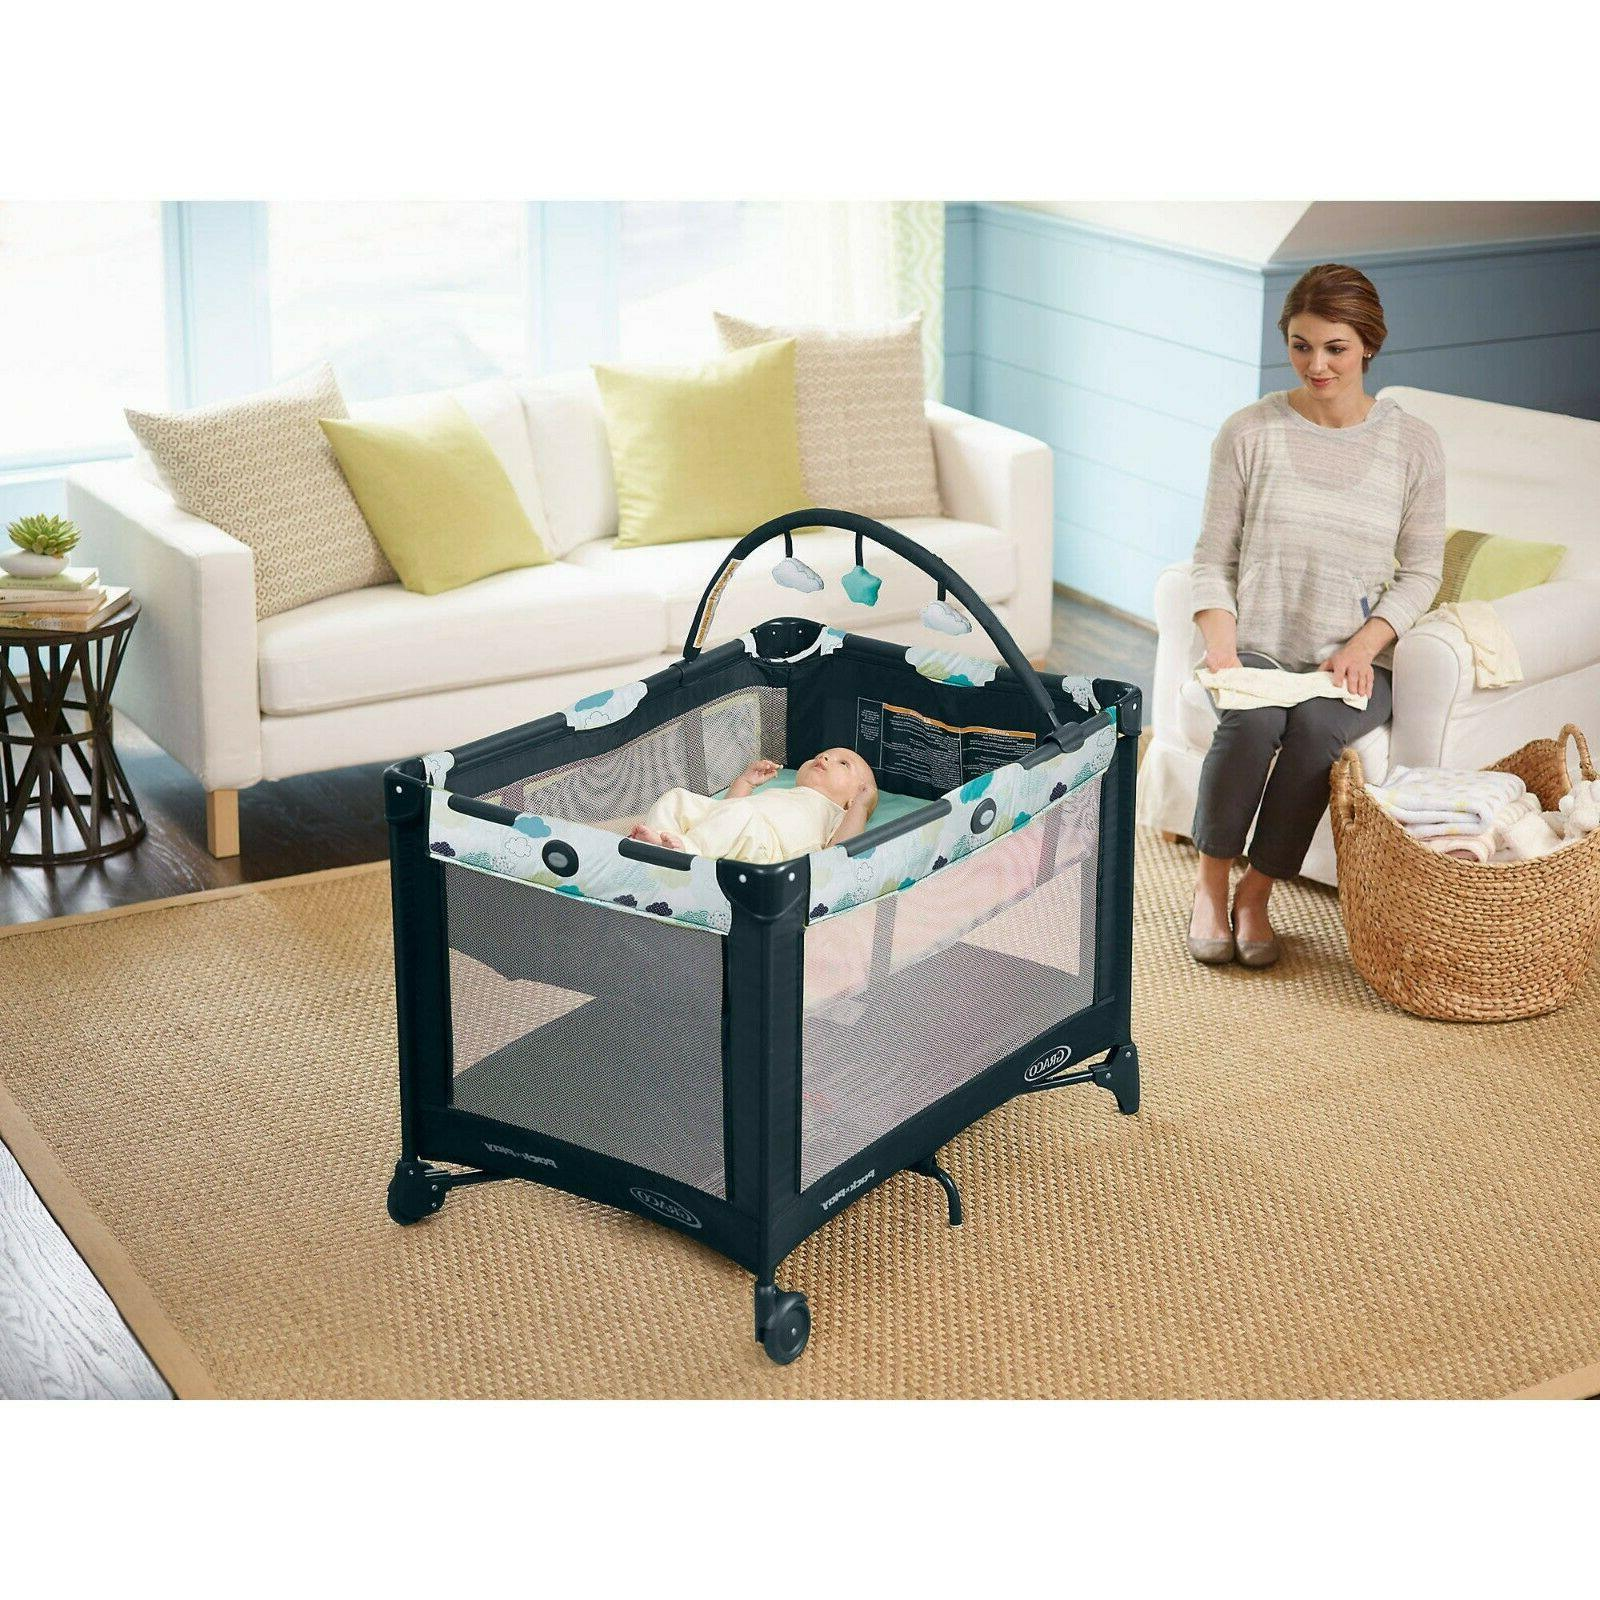 Baby Graco Packn Play On the Go Playard with Bassinet Stratu